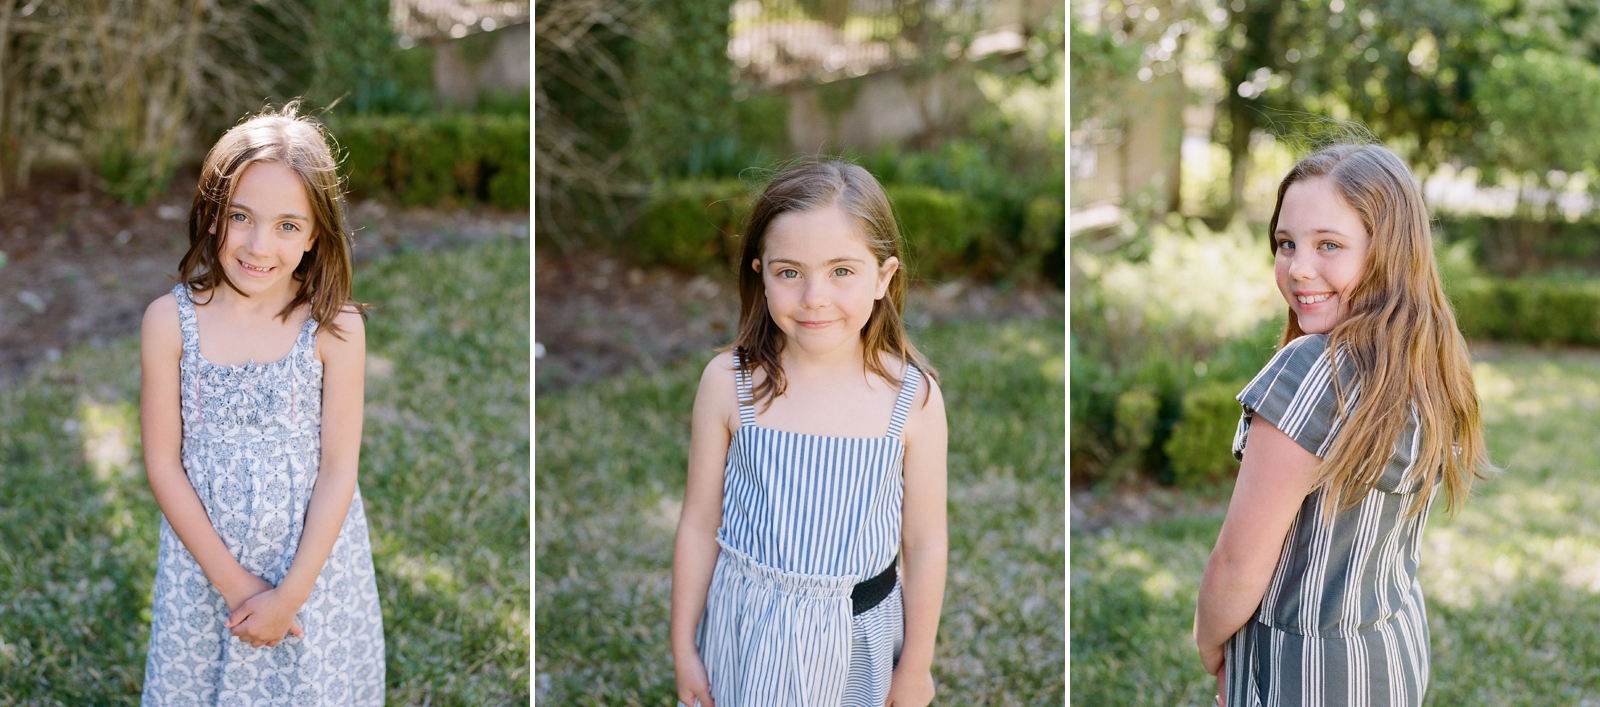 sea_island_family_photographer_sea_island_georgia_ogilvie_shannon_griffin_0008.jpg